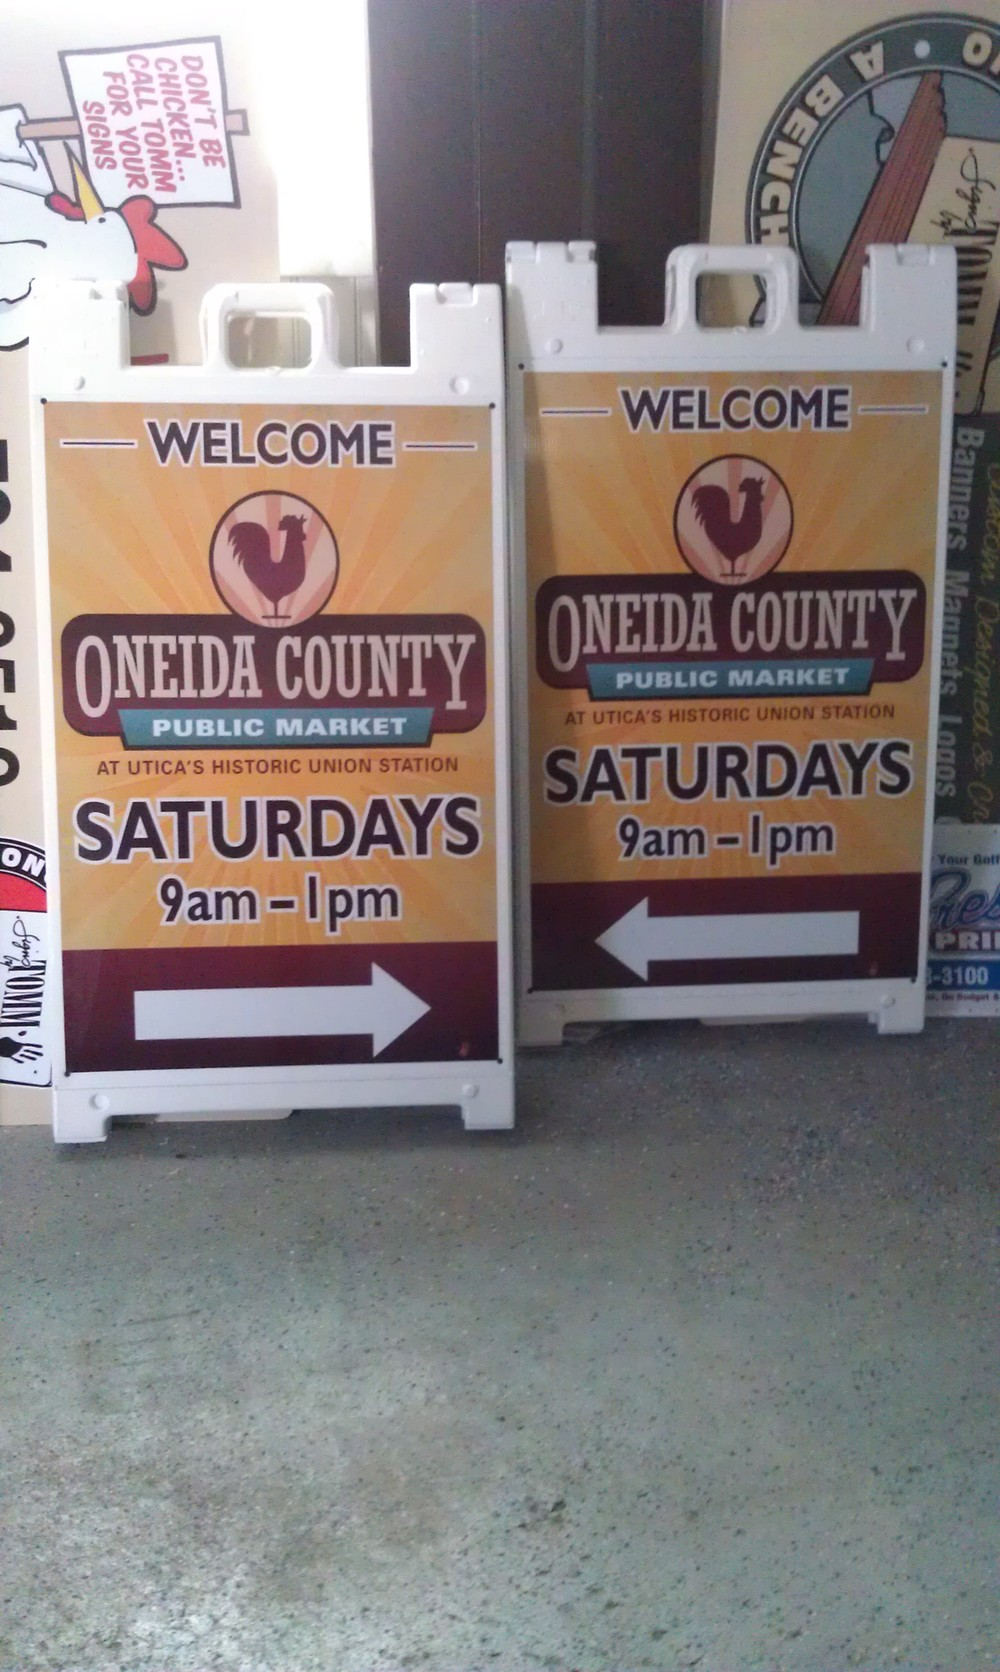 CAFE SIGNS ONEIDA COUNTY FARMERS MARKET.jpg